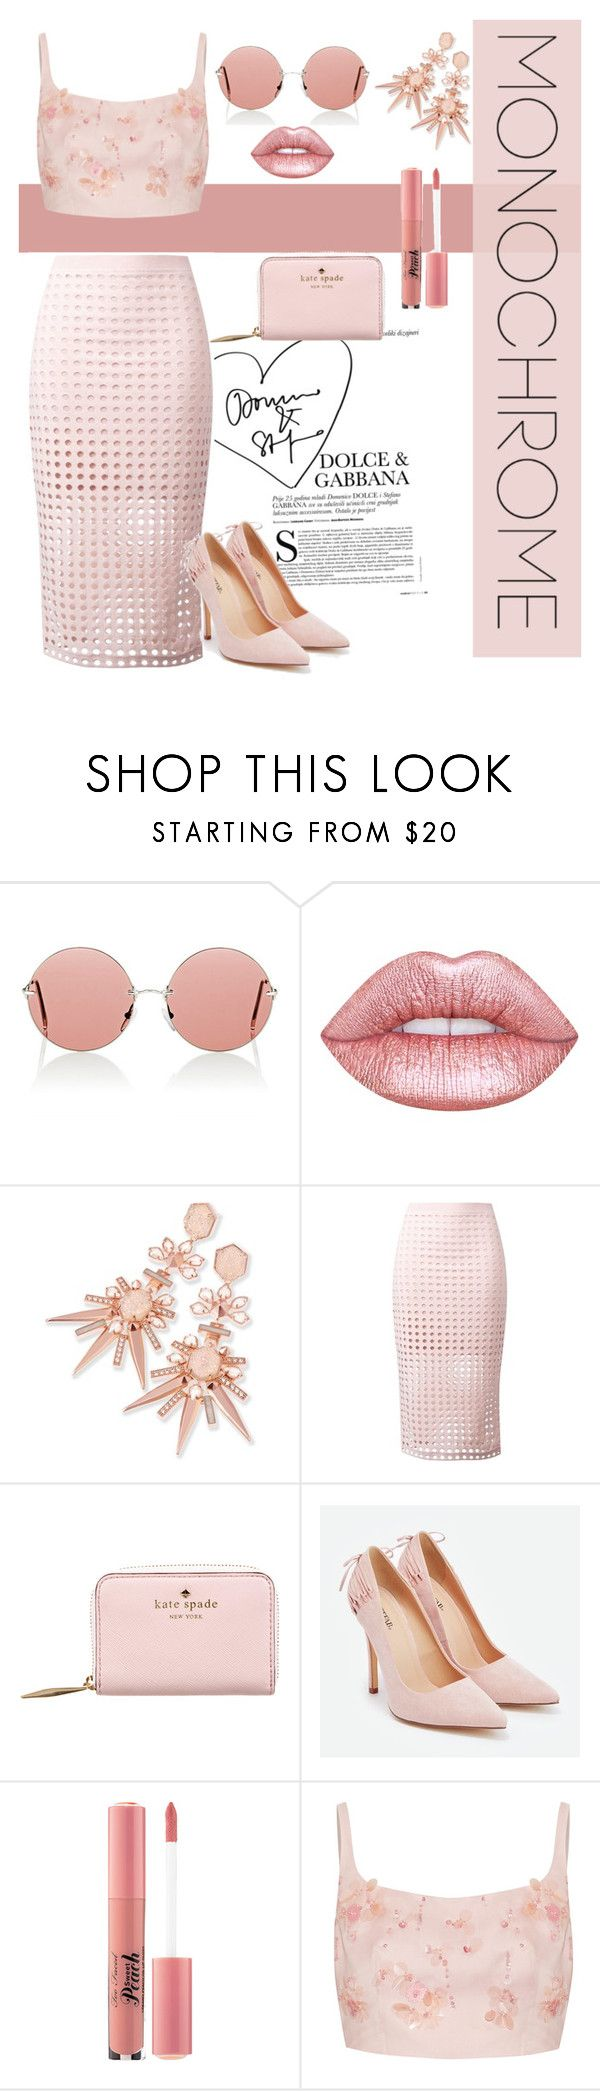 """""""Mean girl 2"""" by sarahtboss ❤ liked on Polyvore featuring Christopher Kane, Lime Crime, Kendra Scott, T By Alexander Wang, Kate Spade, JustFab, Too Faced Cosmetics and Prada"""